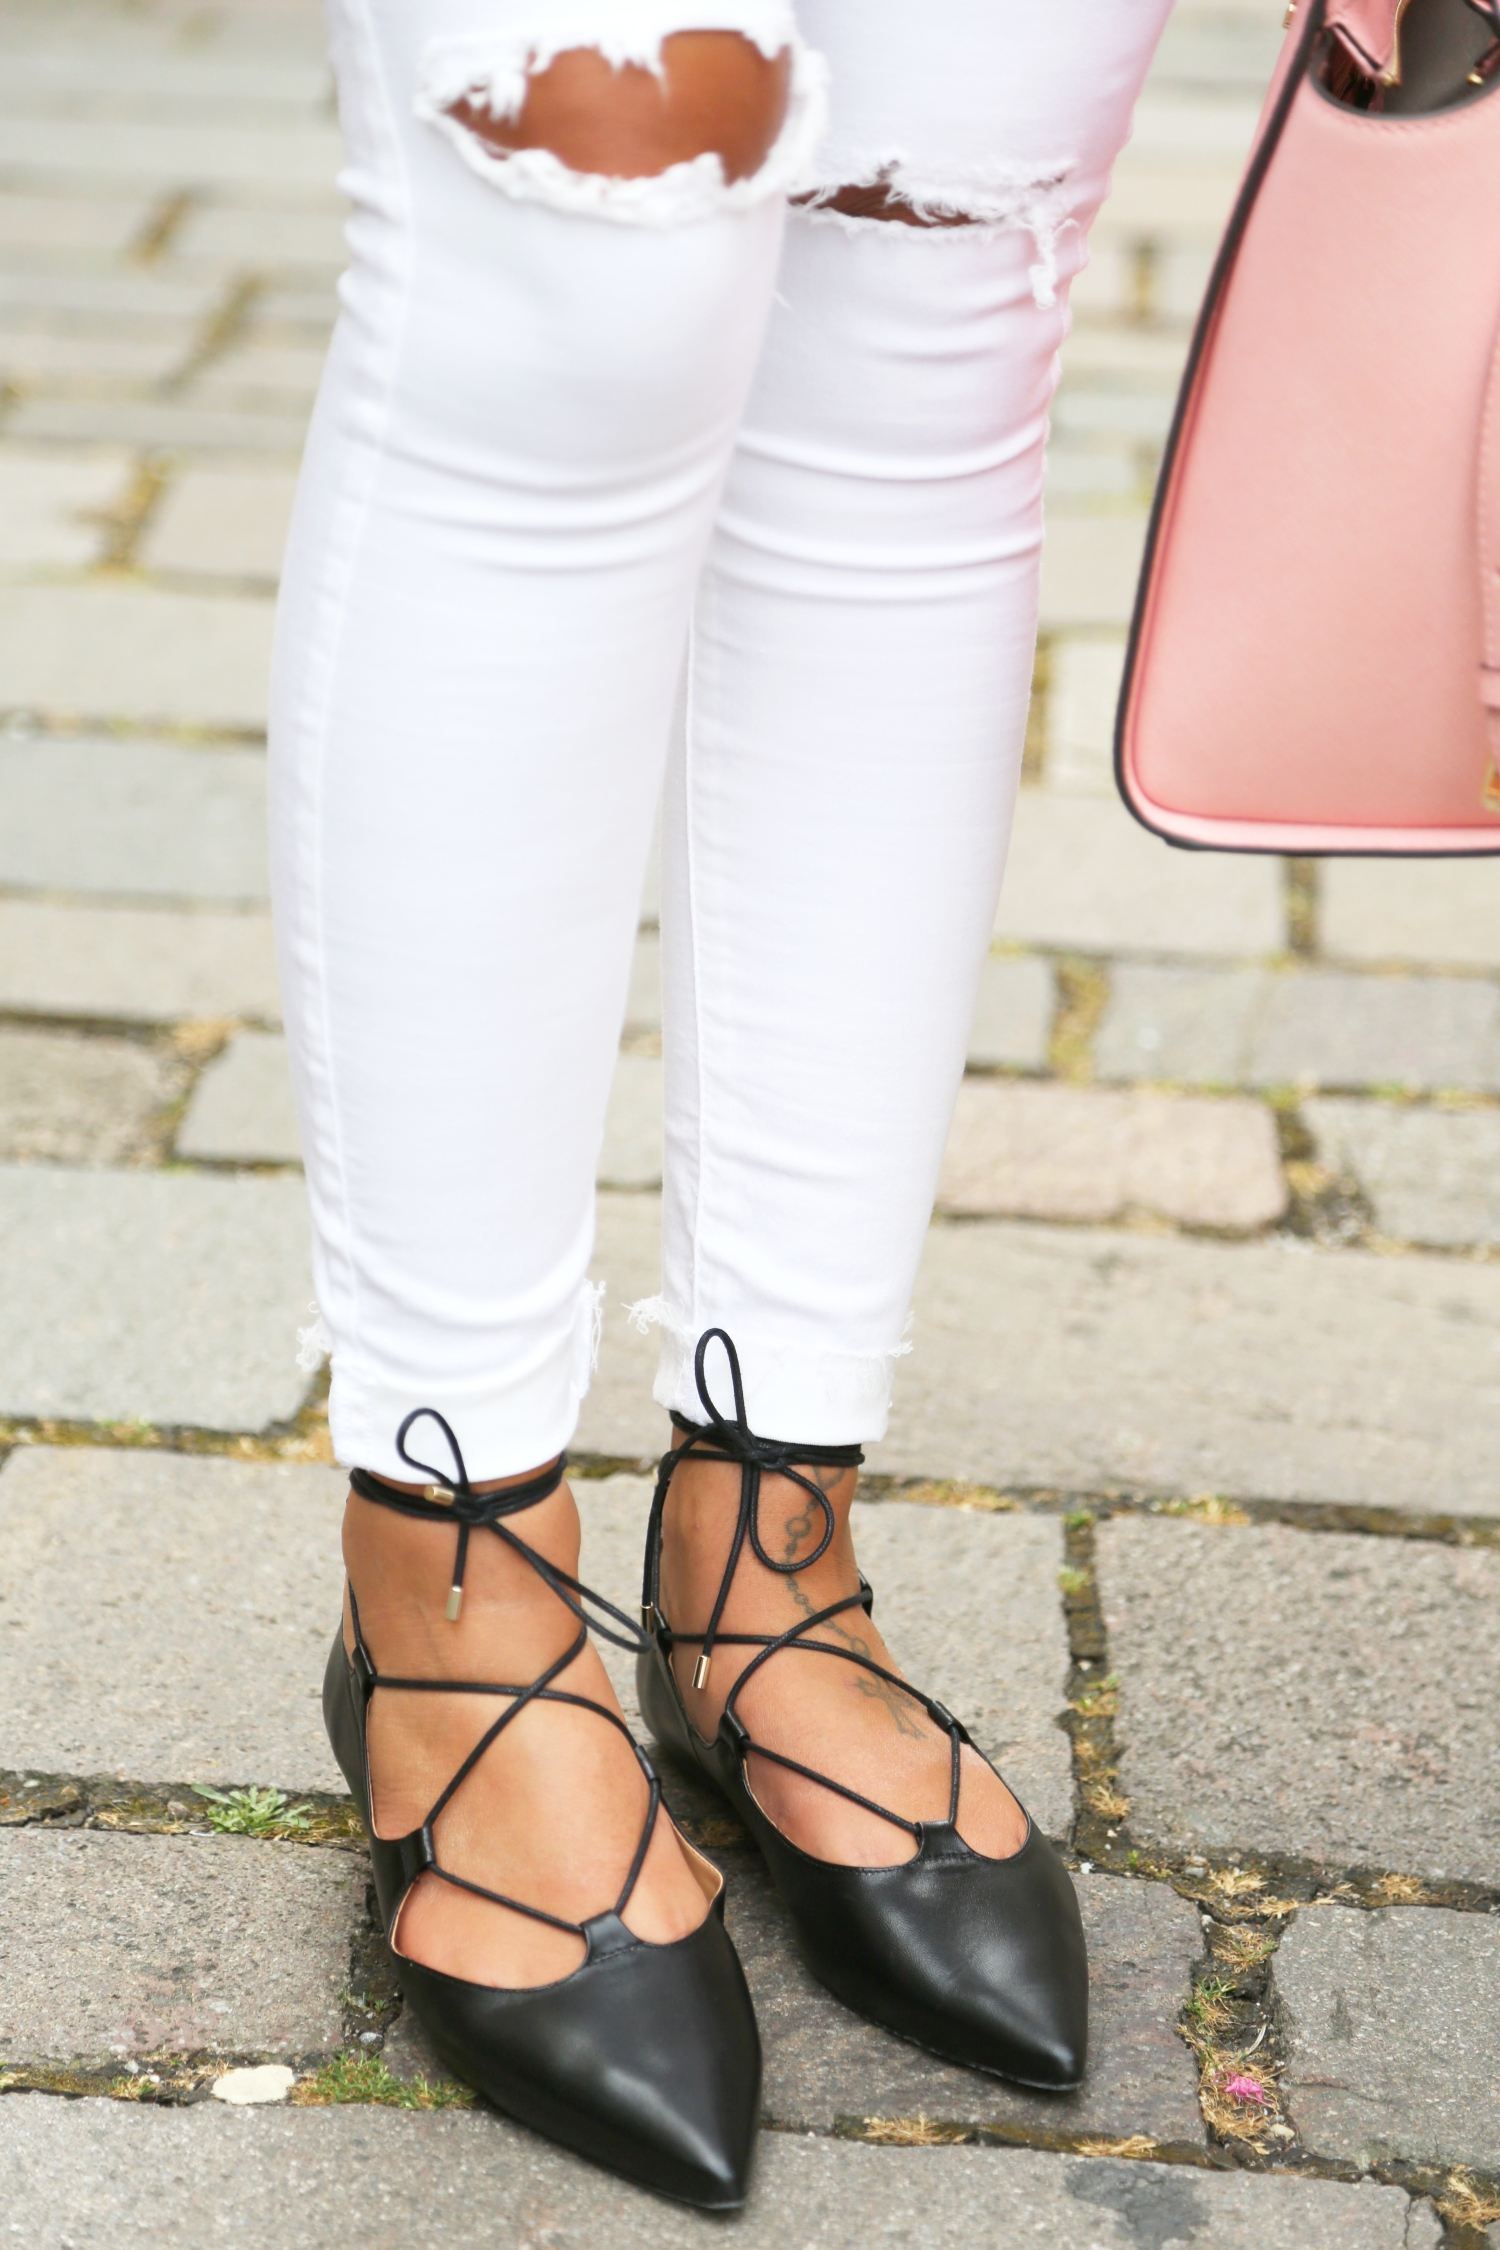 topshop-lace-up-sandals-black-aquazzura-like